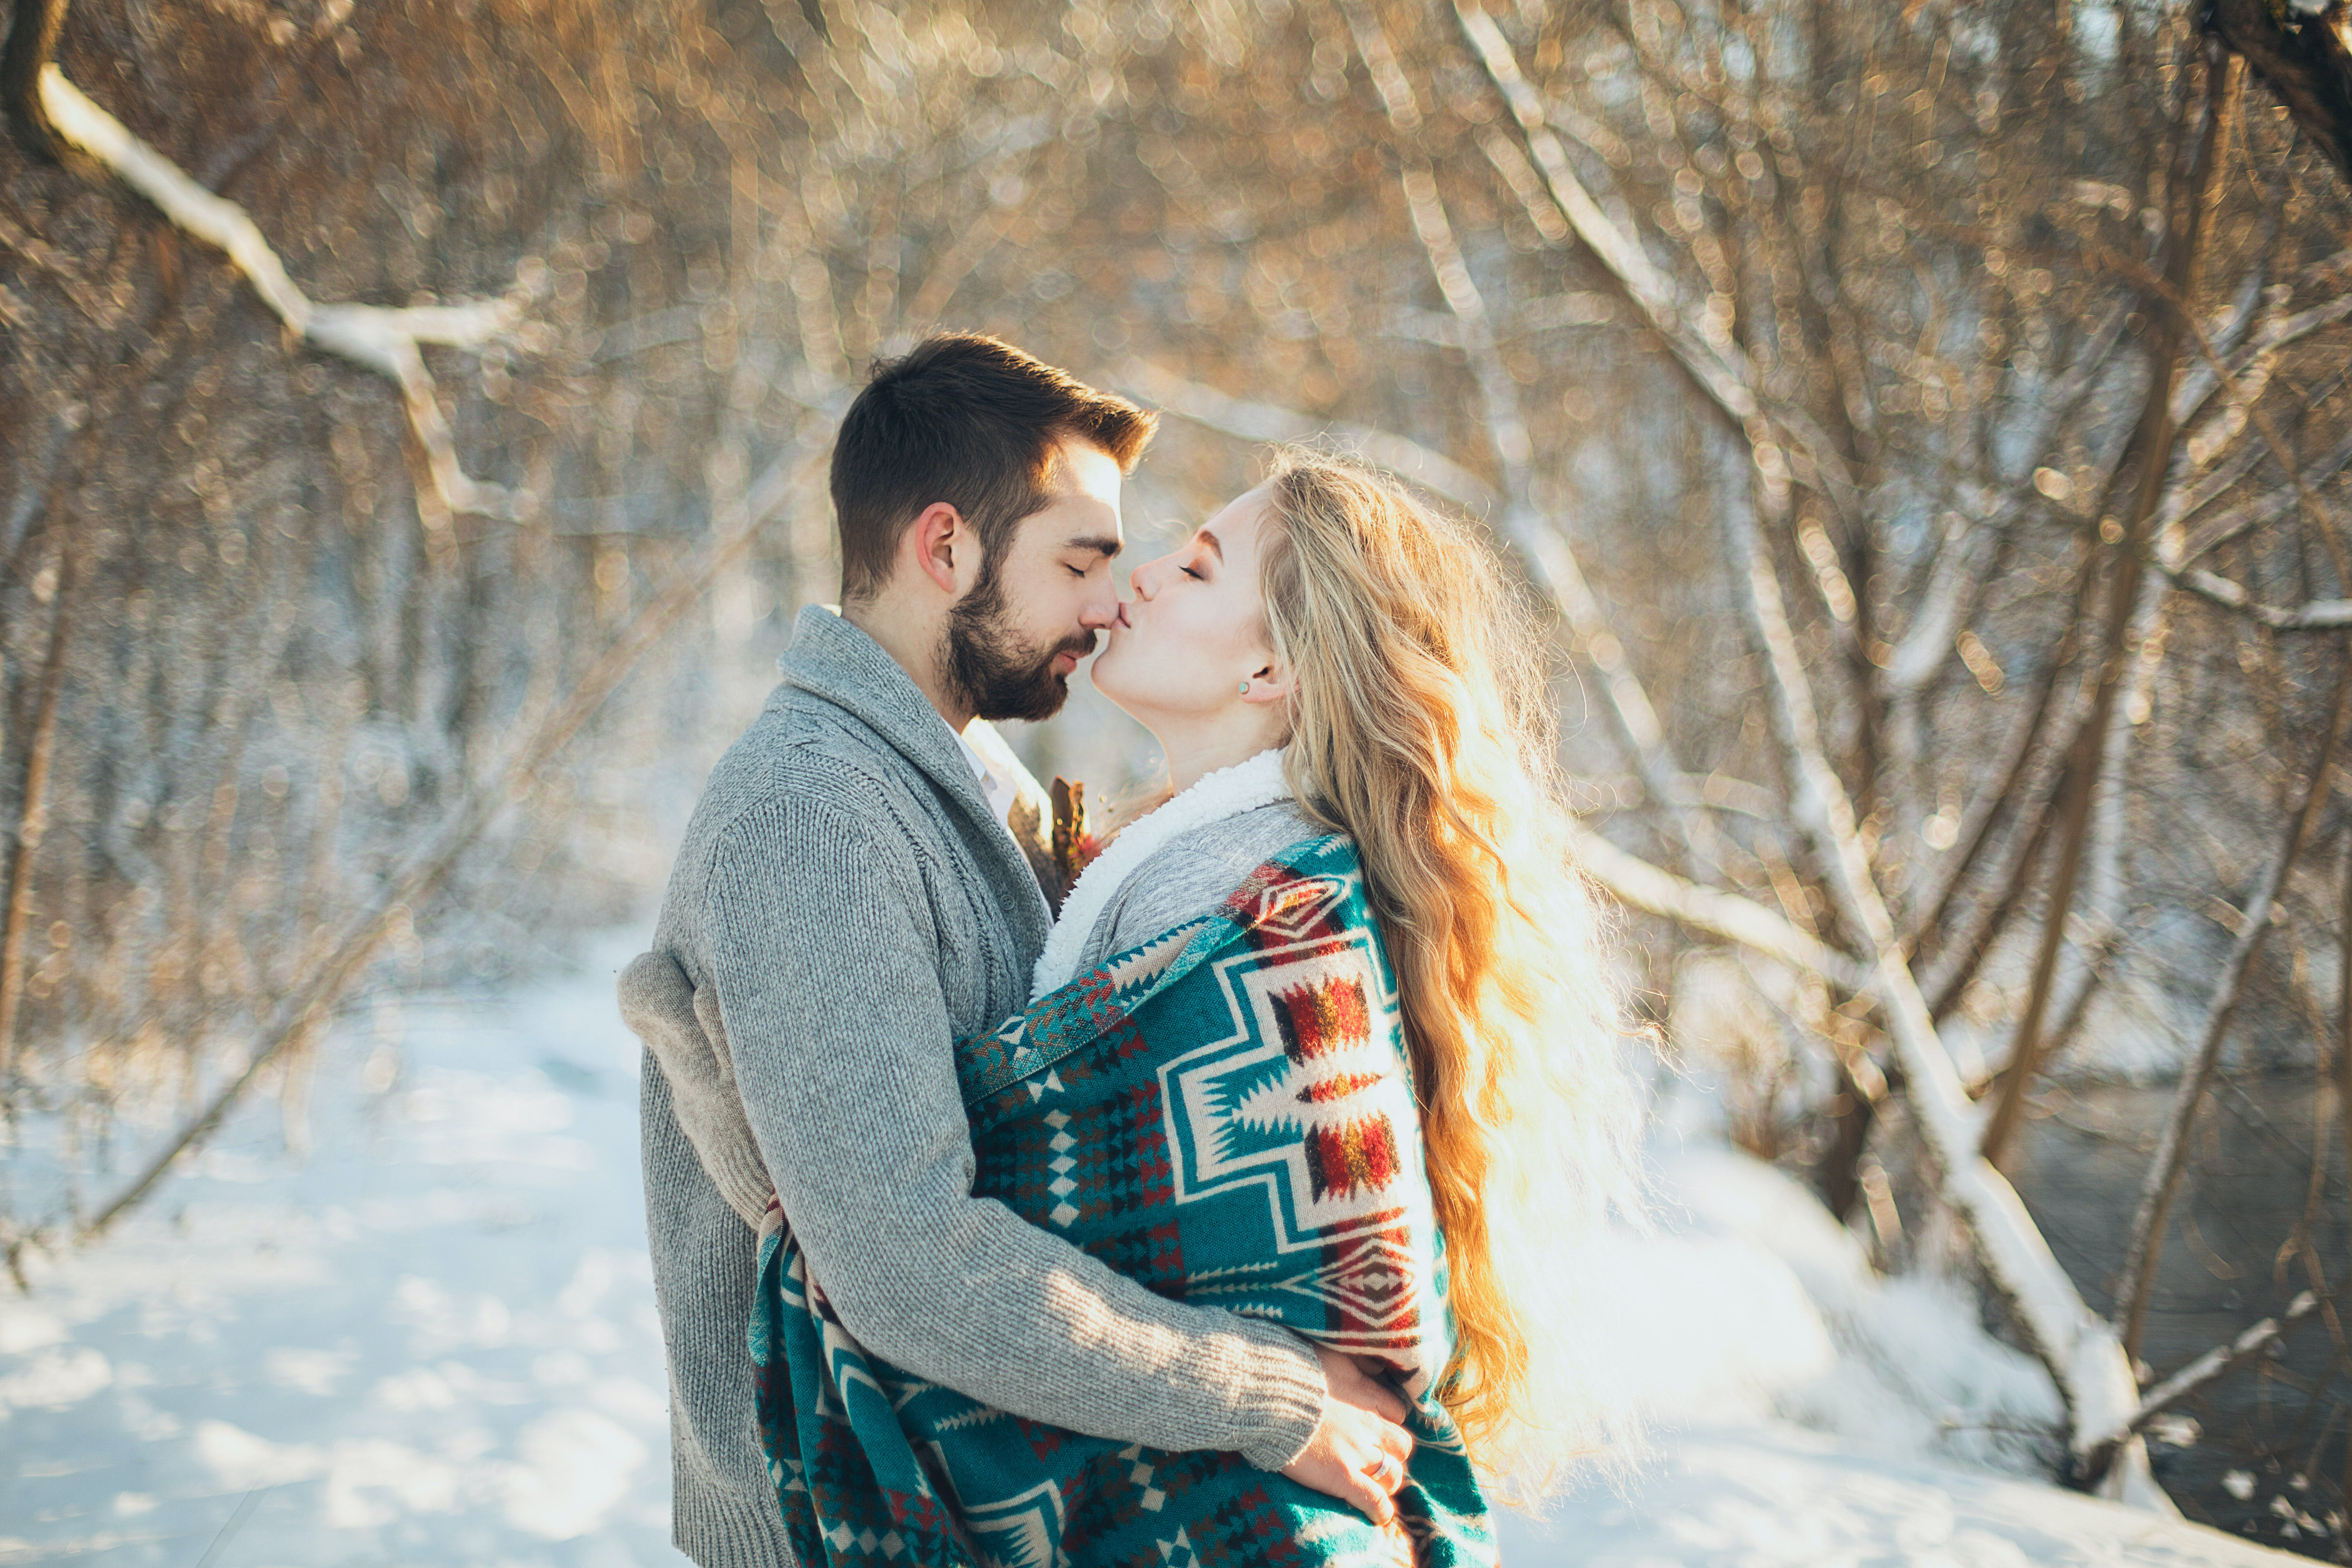 Man and Woman Hugging Each Other About to Kiss during Snow Season